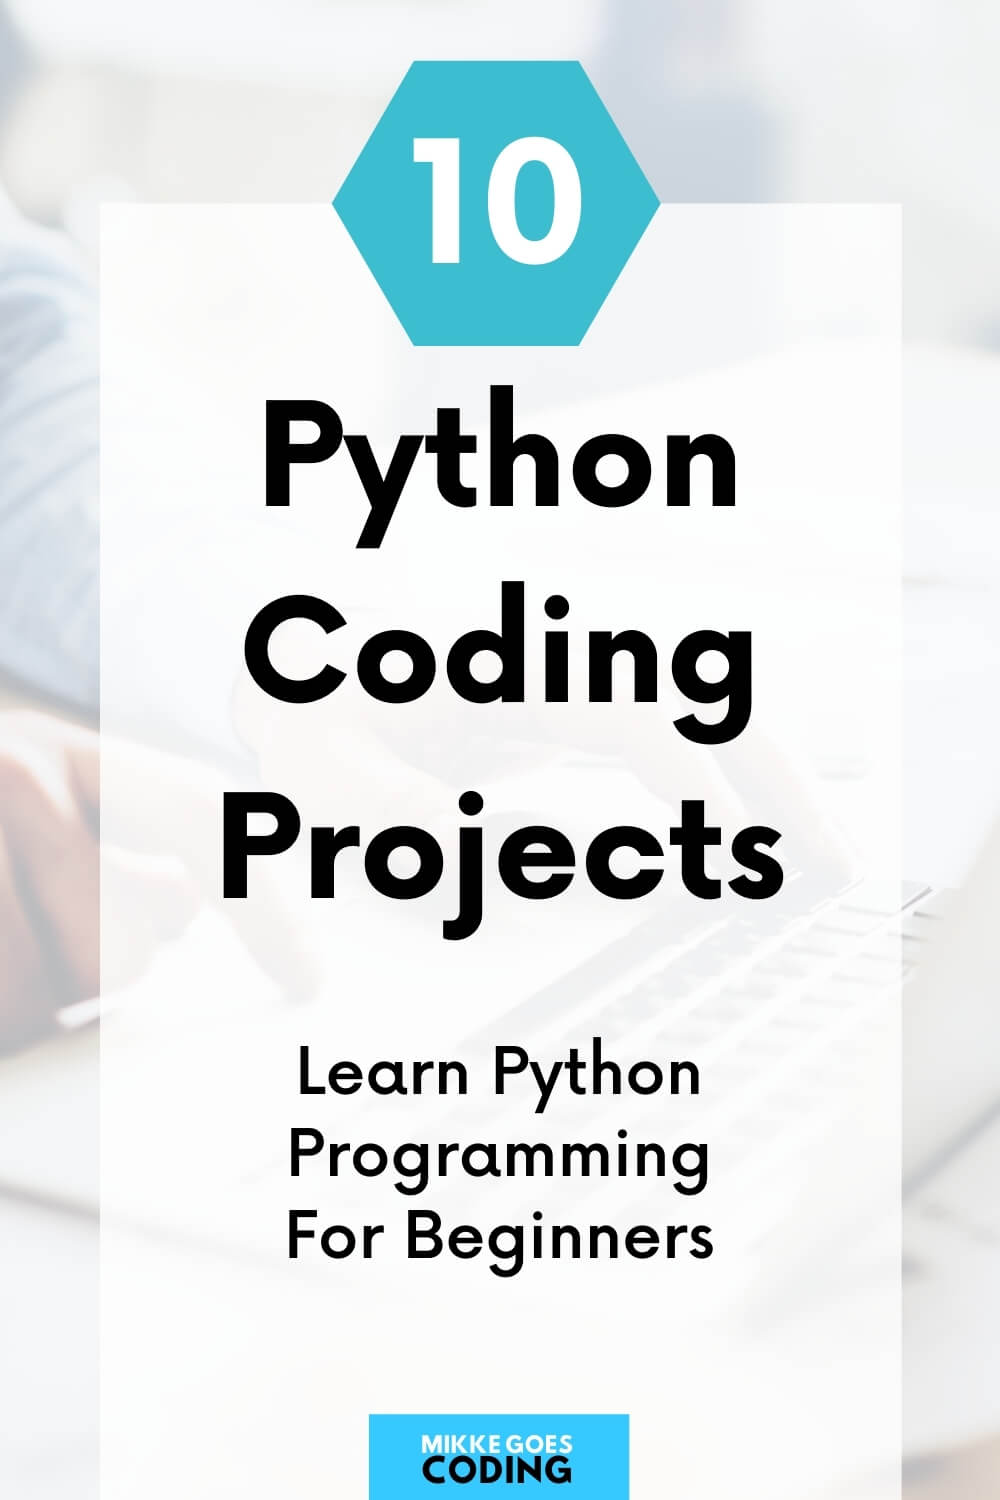 Python coding projects for beginners